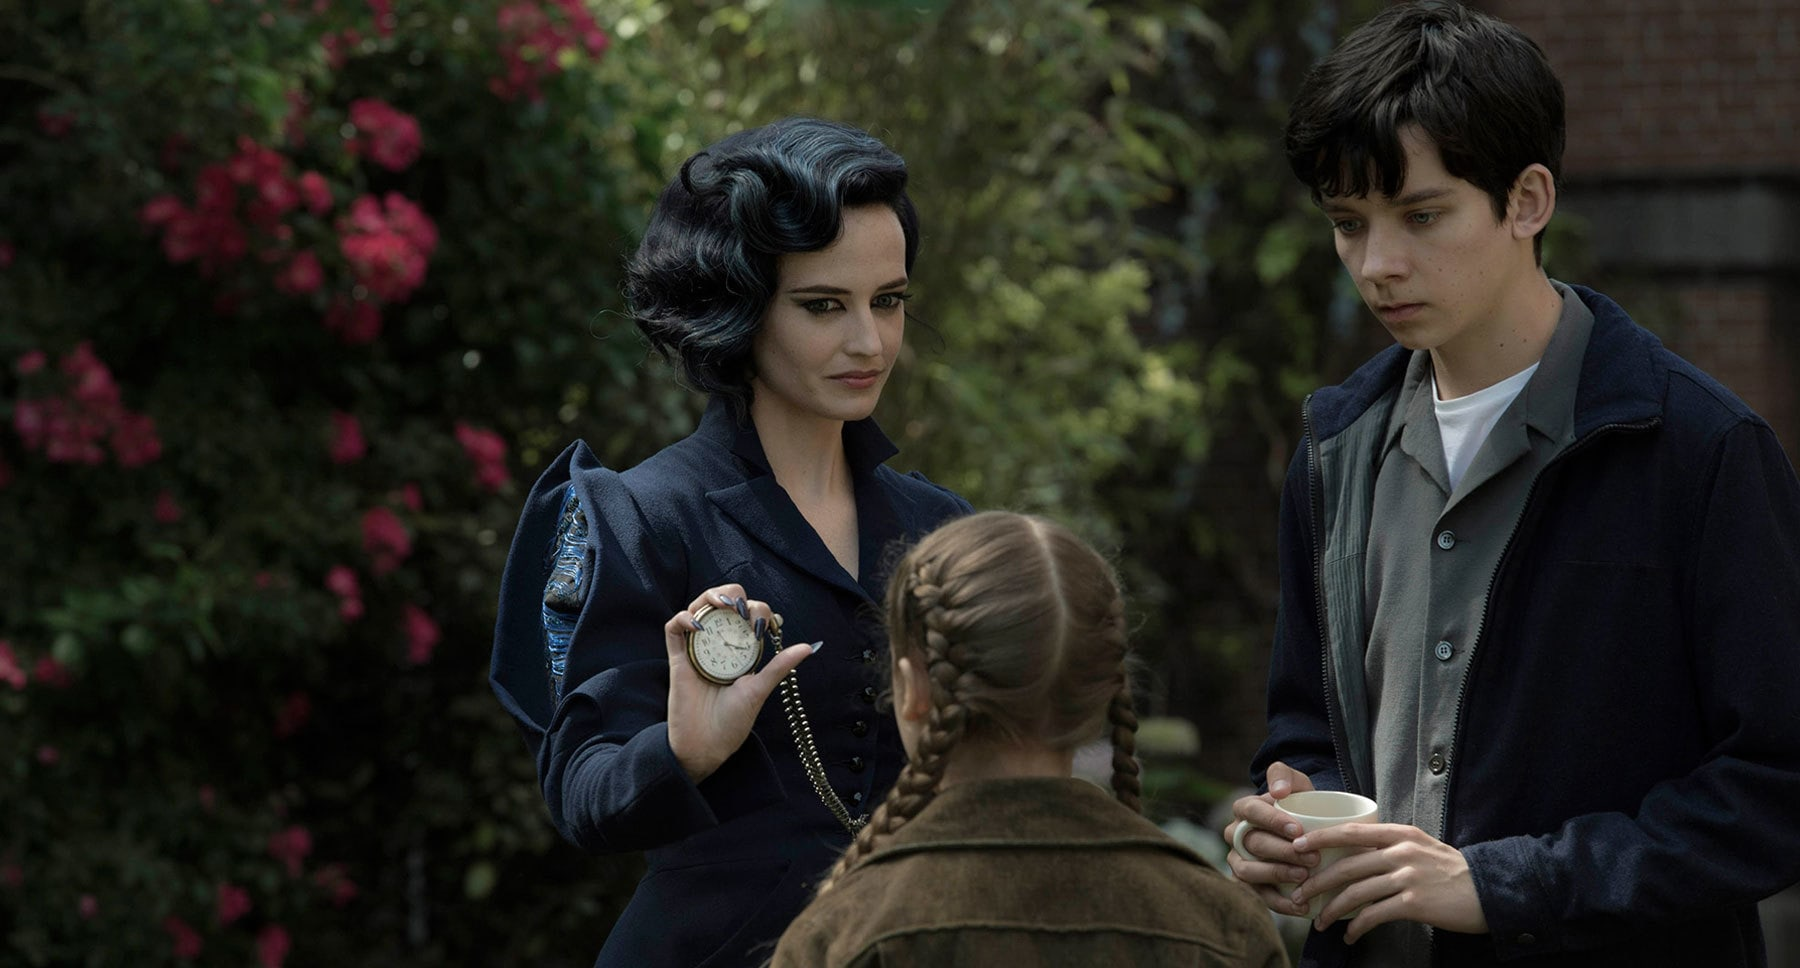 """Actors Eva Green (as Miss Peregrine), Georgia Pemberton (as Fiona) and Asa Butterfield (as Jake) in the movie """"Miss Peregrine's Home for Peculiar Children"""""""